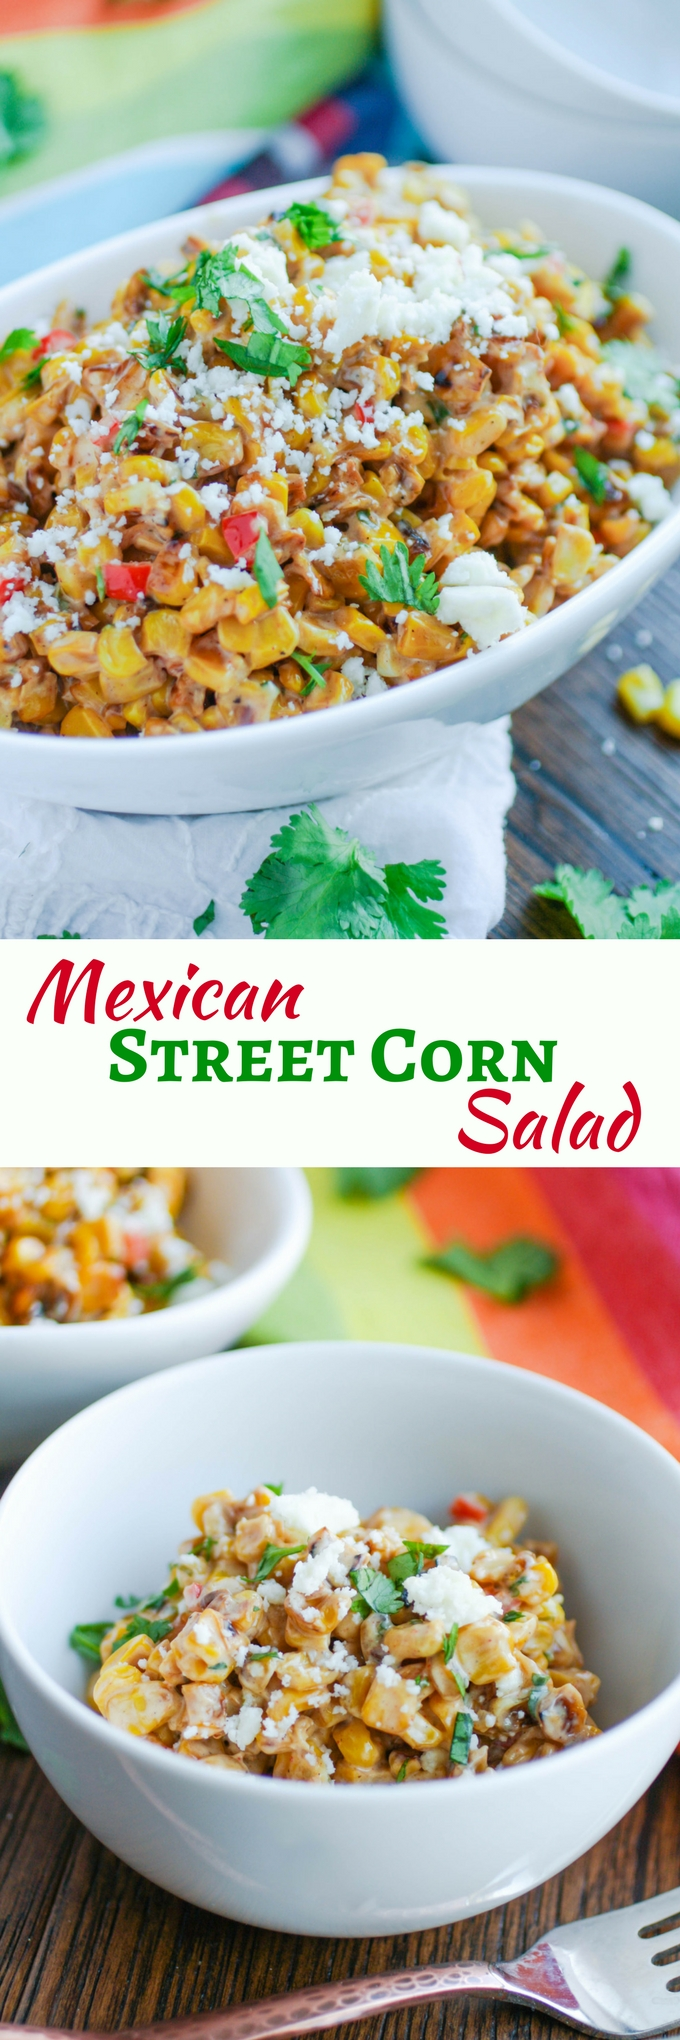 Mexican Street Corn Salad is a super side for the summer! You'll love the flavors and colors in this dish.